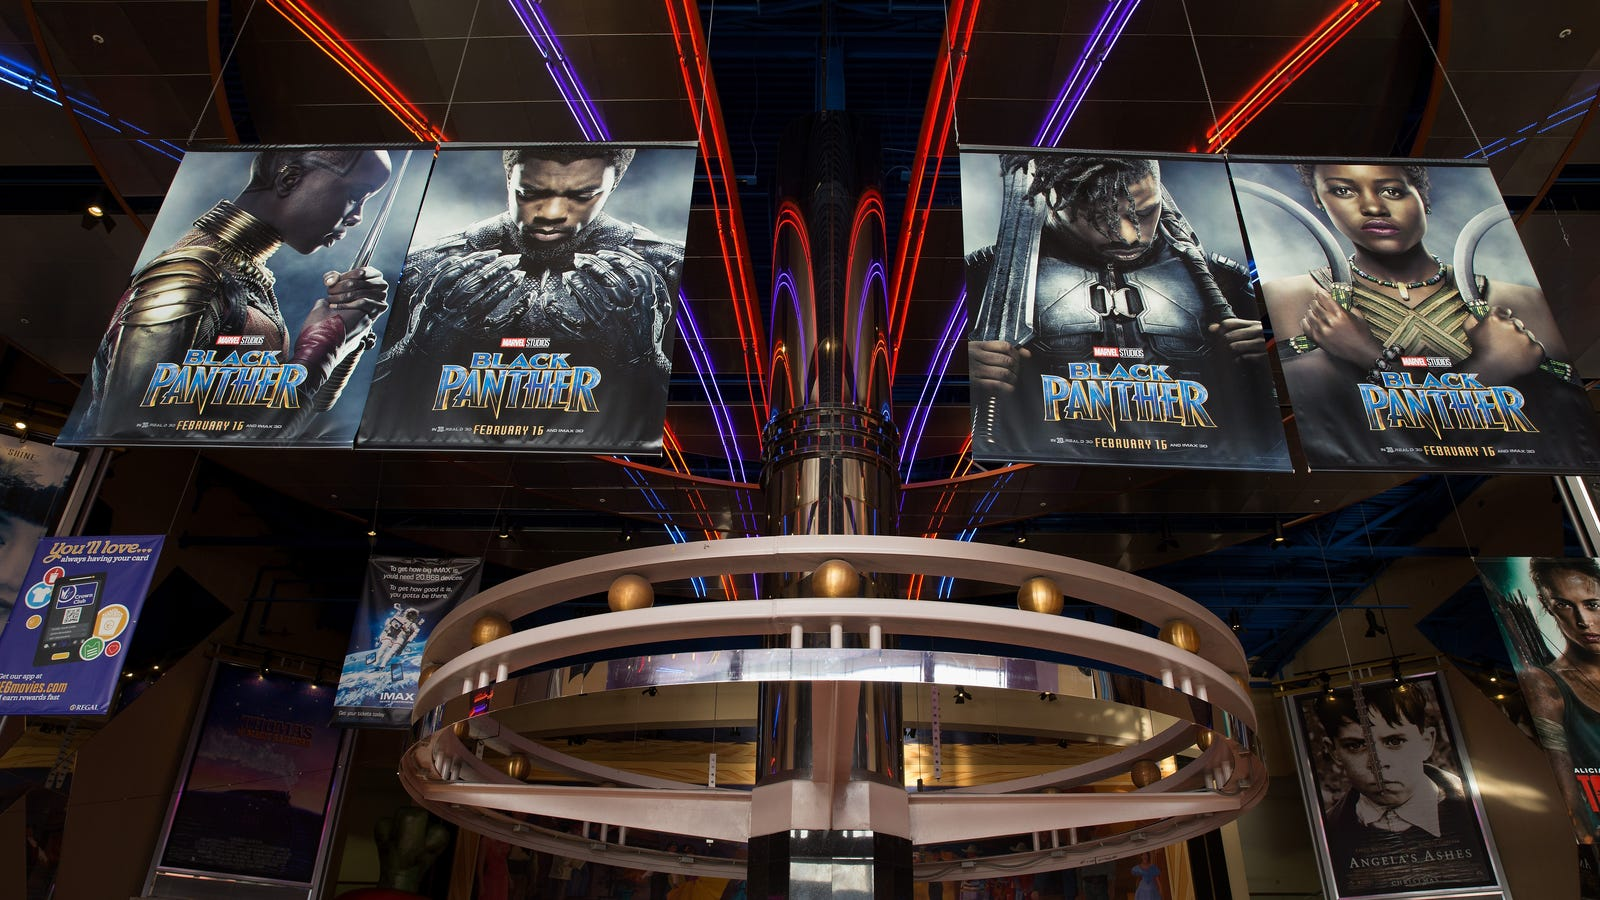 Black PantherBeats Out Star Wars: The Force Awakensfor the Biggest Monday Ever at the Box Office